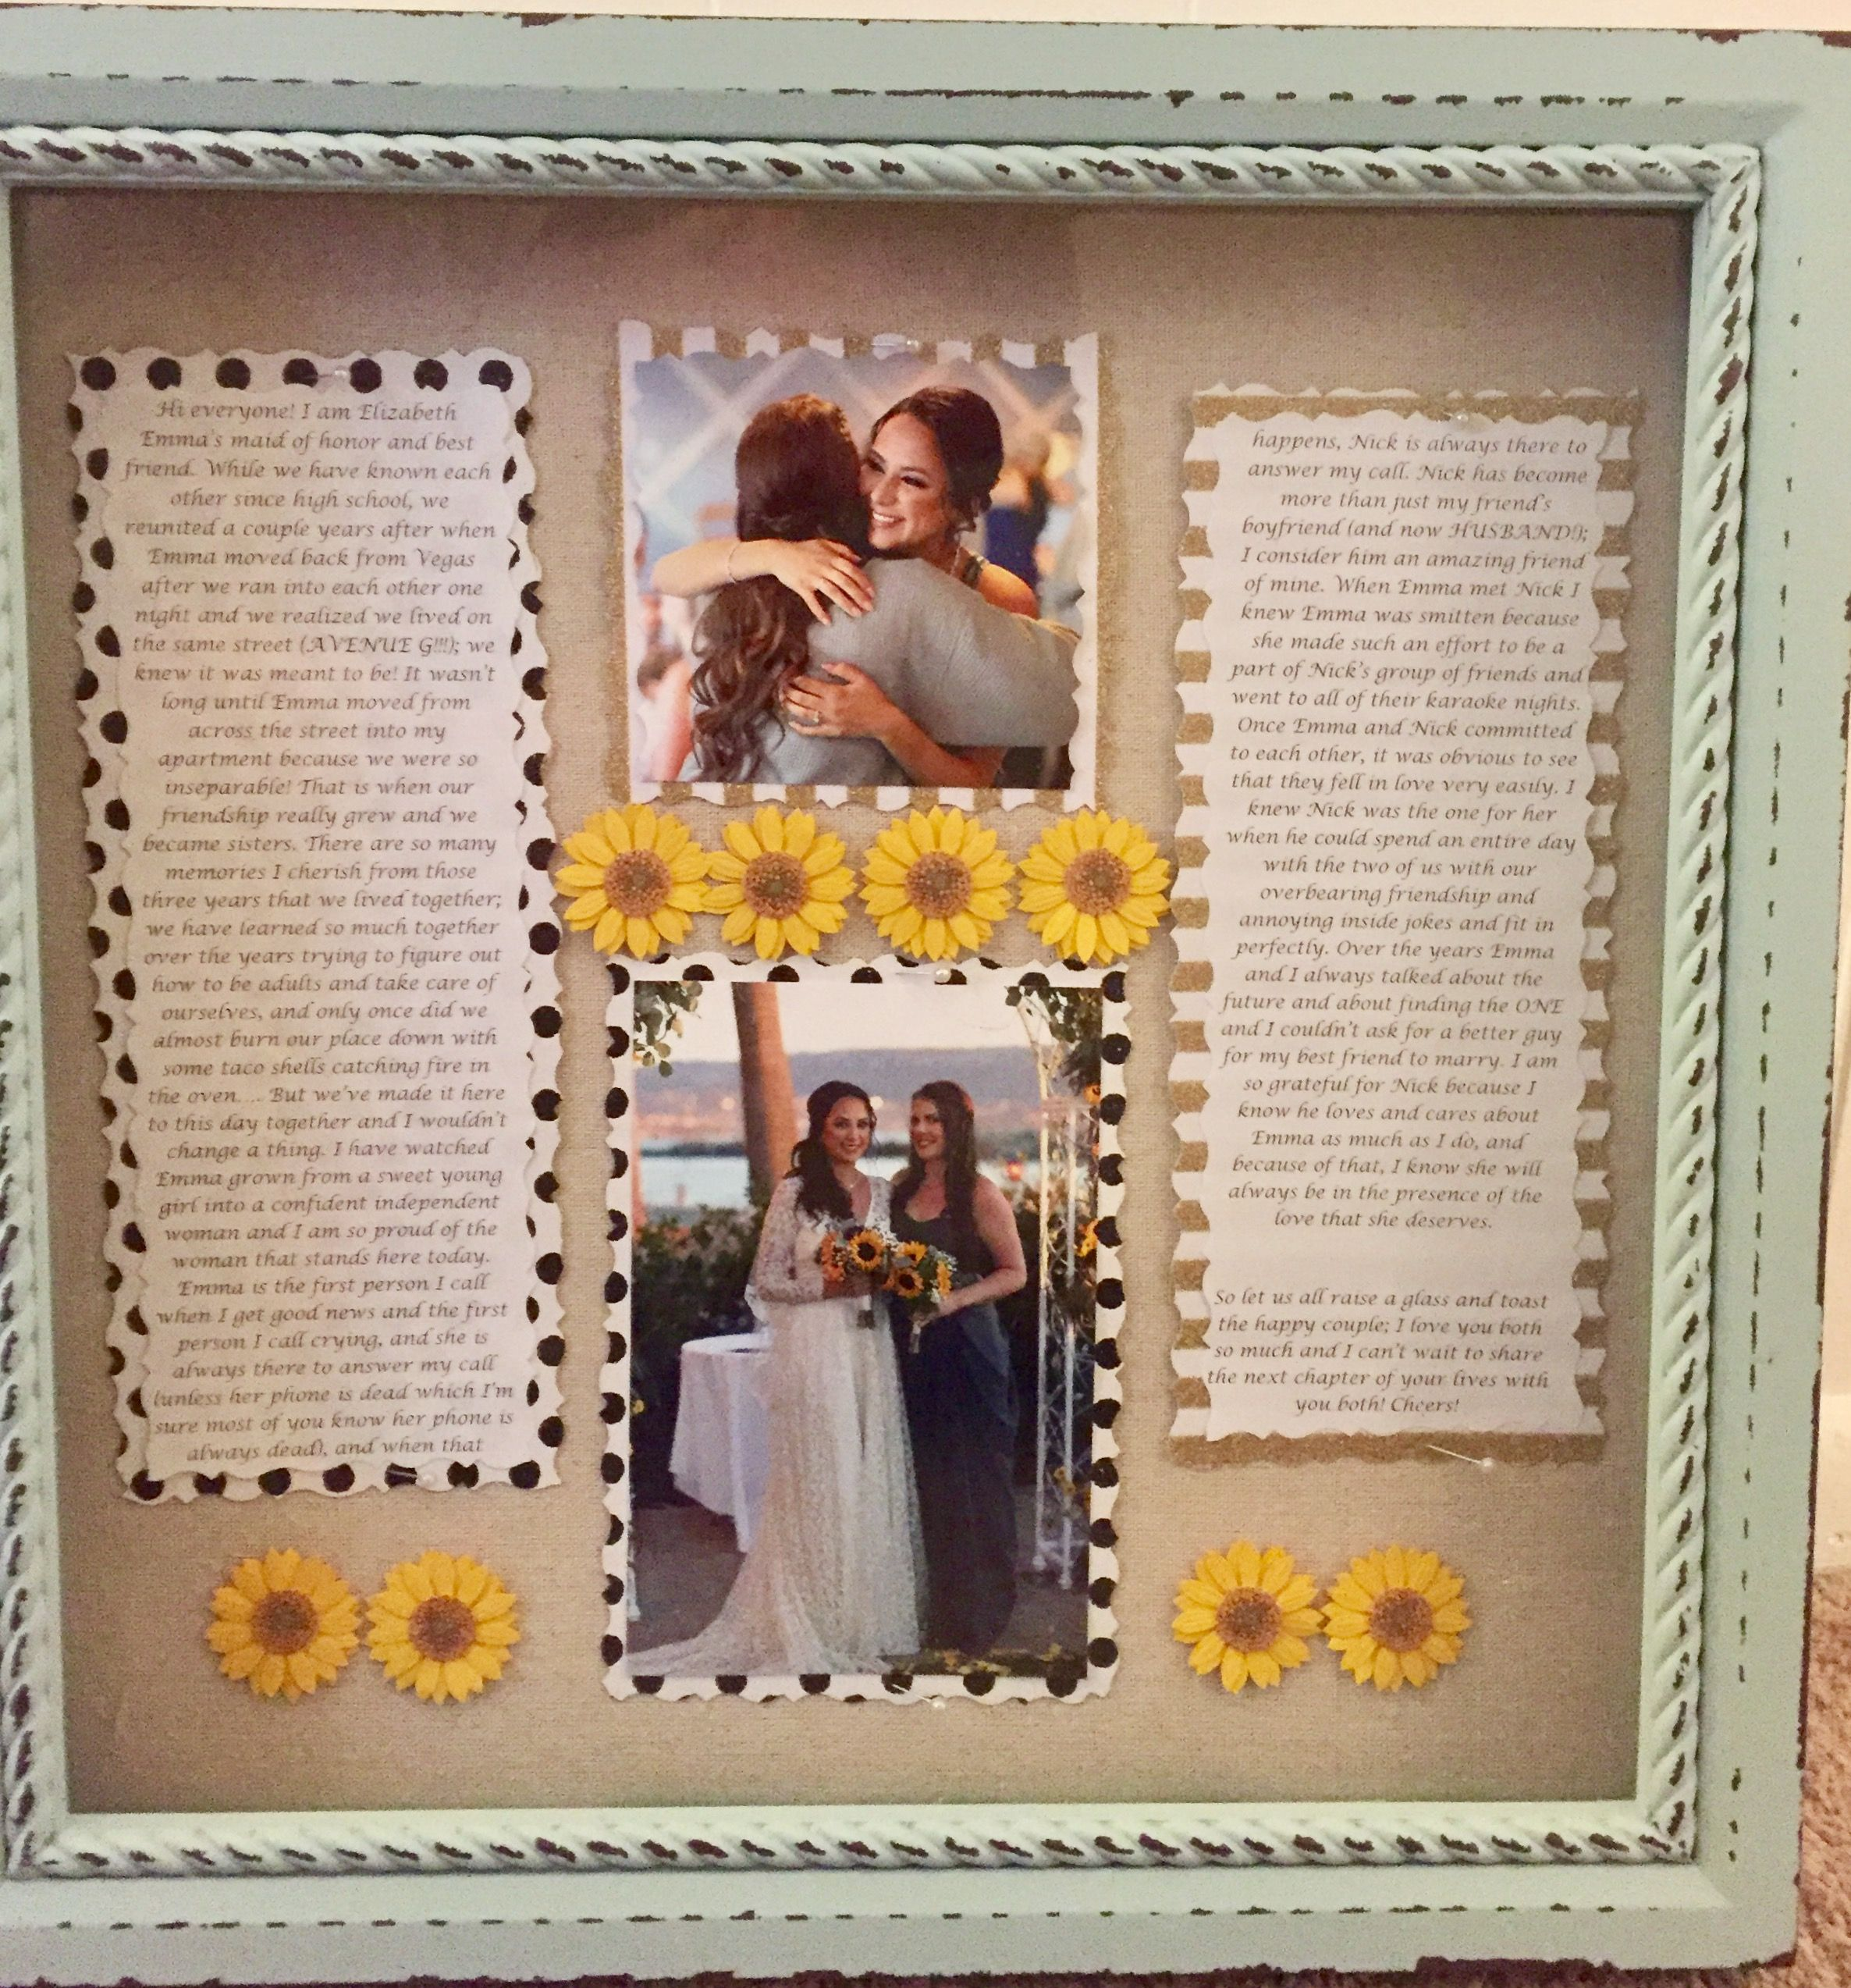 Maid Of Honor Sch Frame After Wedding Gift To Bride From